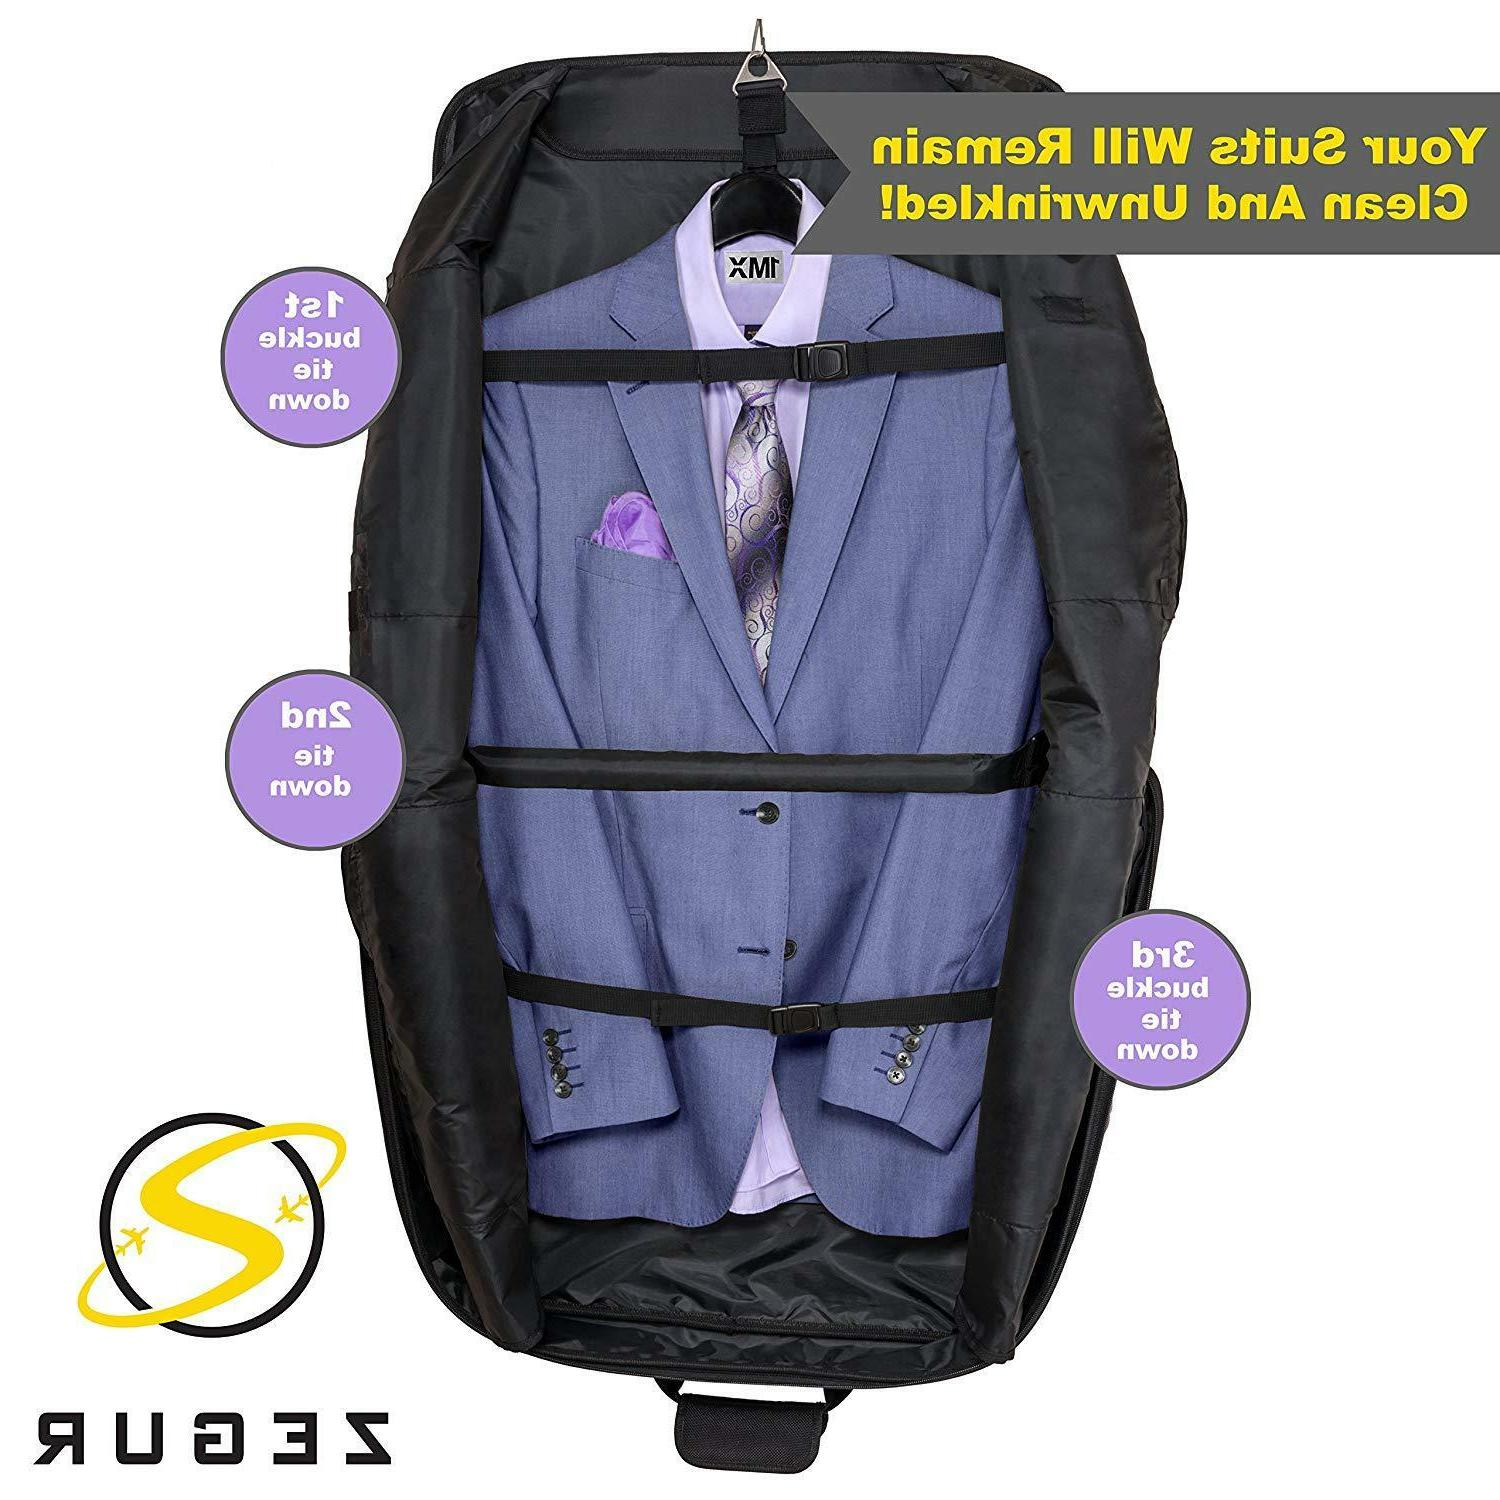 Zegur On Garment Bag Travel & w/Shoulder Straps